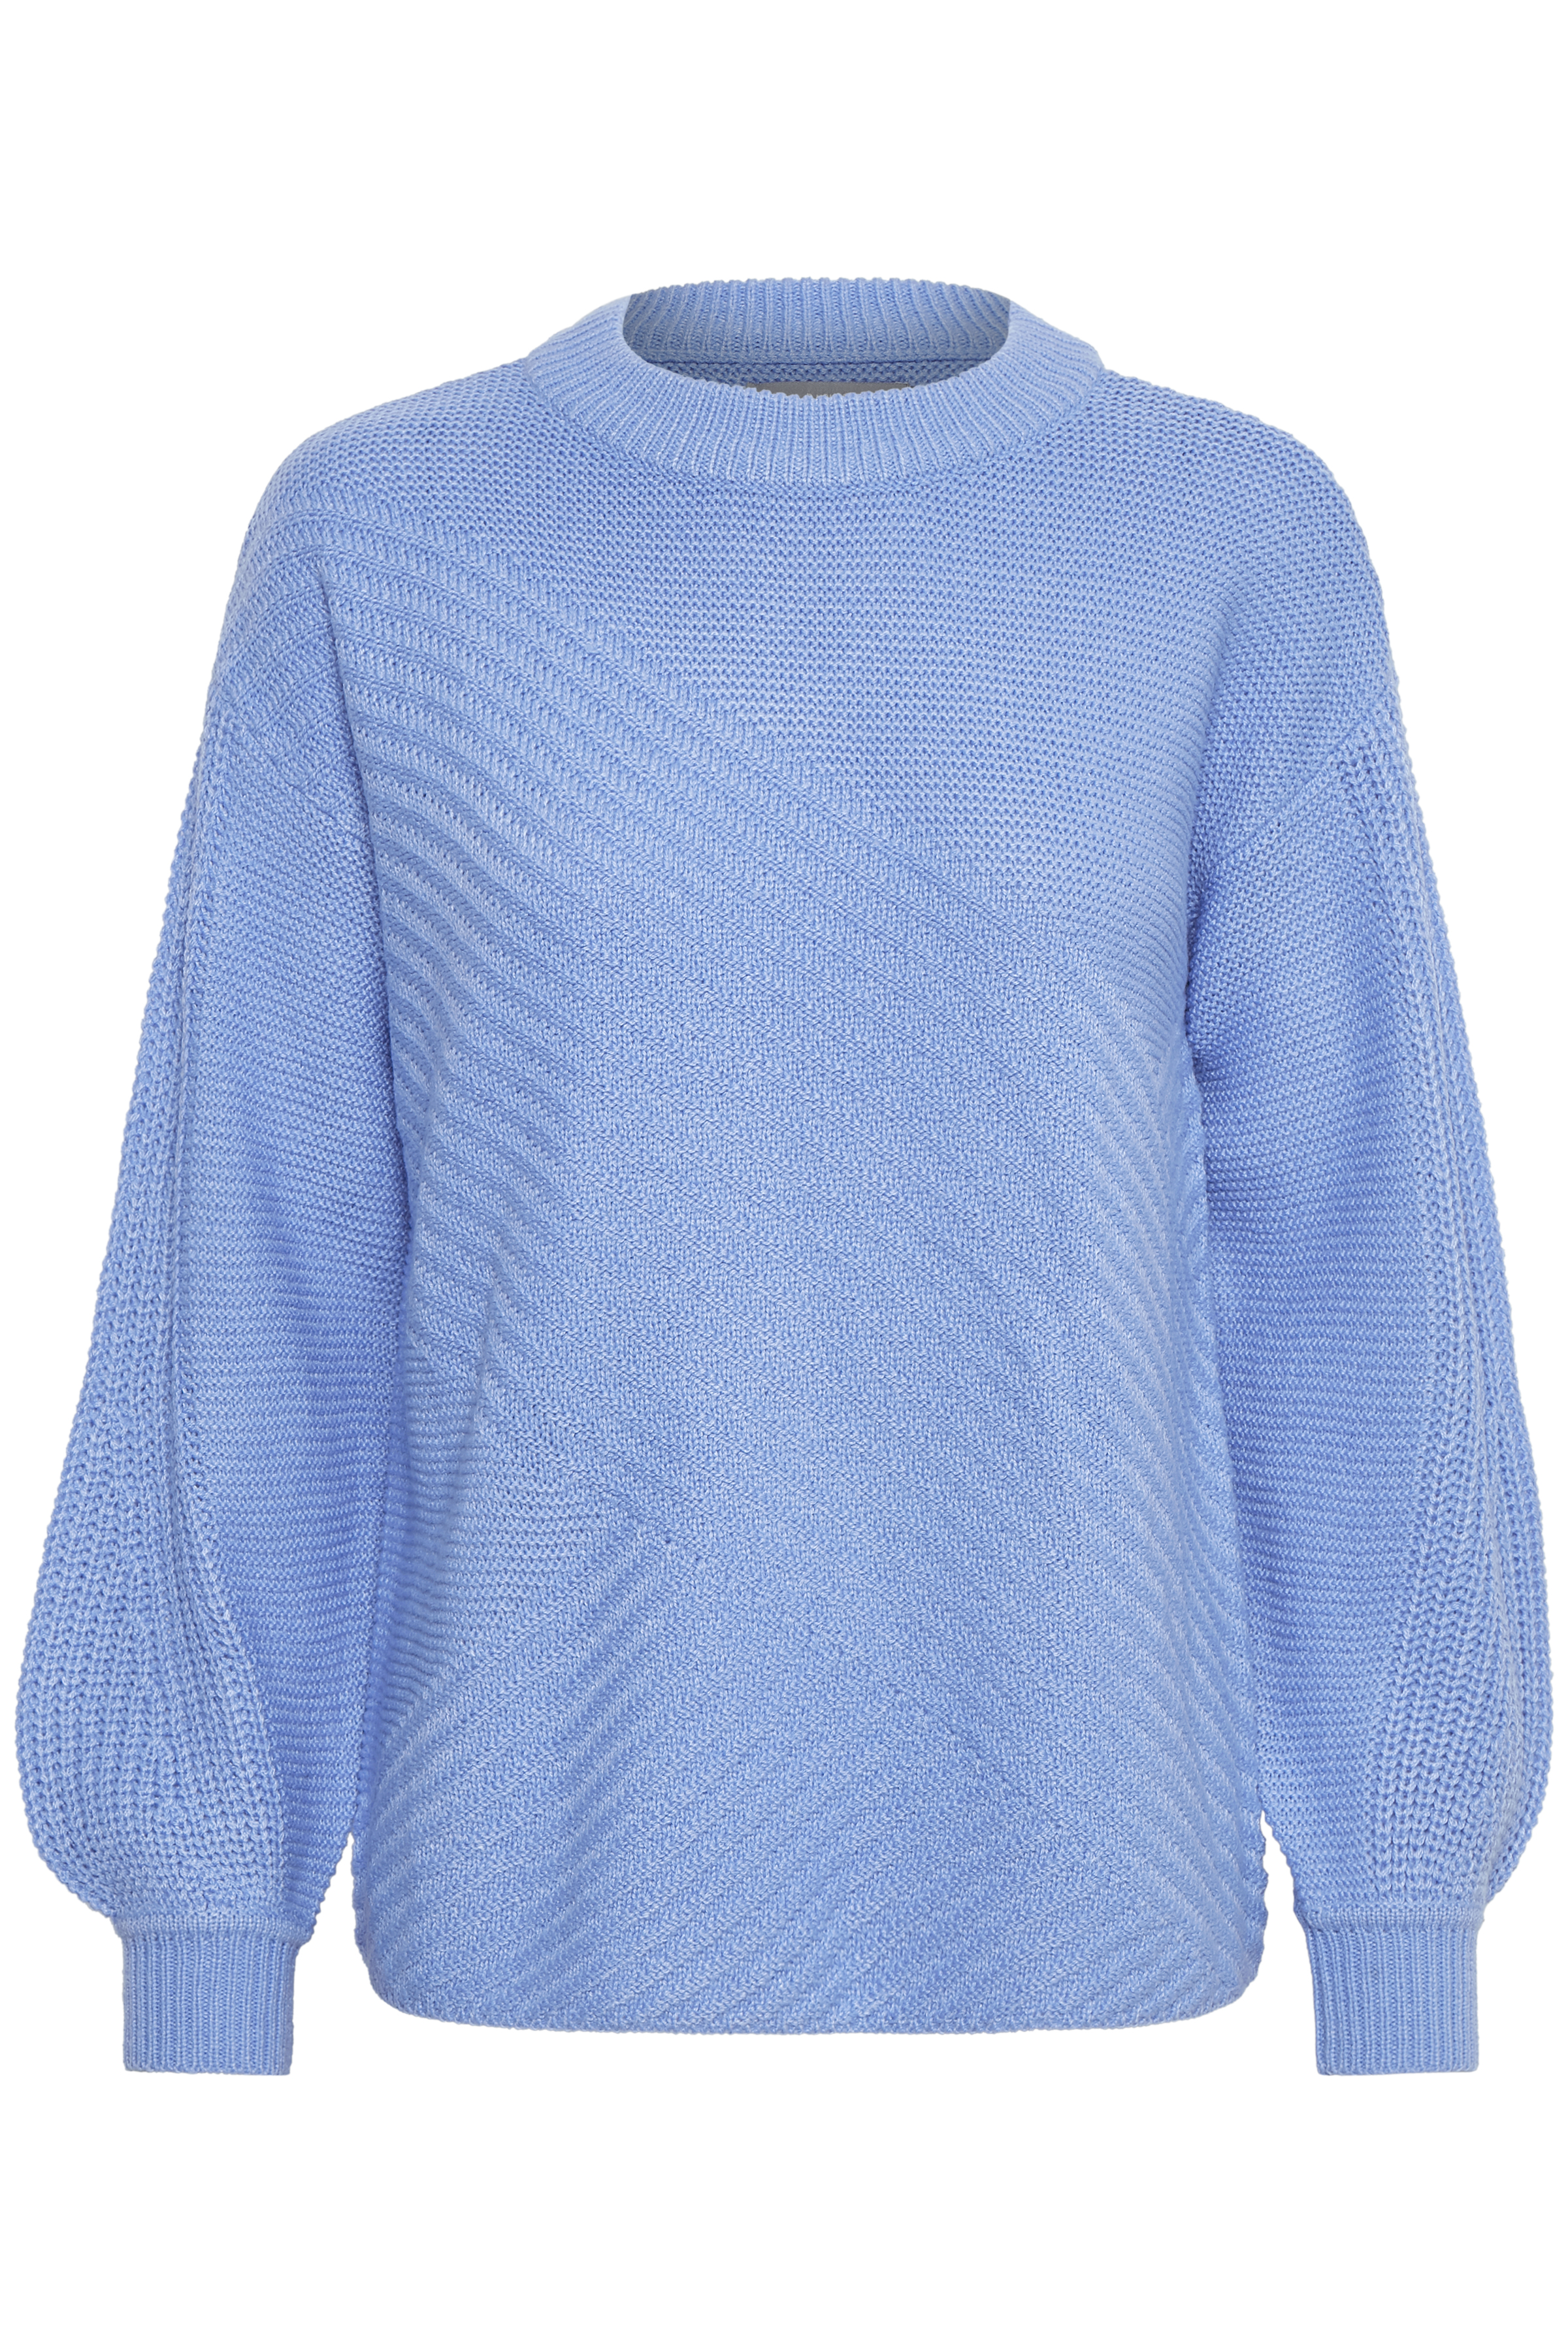 Cornflower Blue Knitted pullover from b.young – Buy Cornflower Blue Knitted pullover from size XS-XXL here